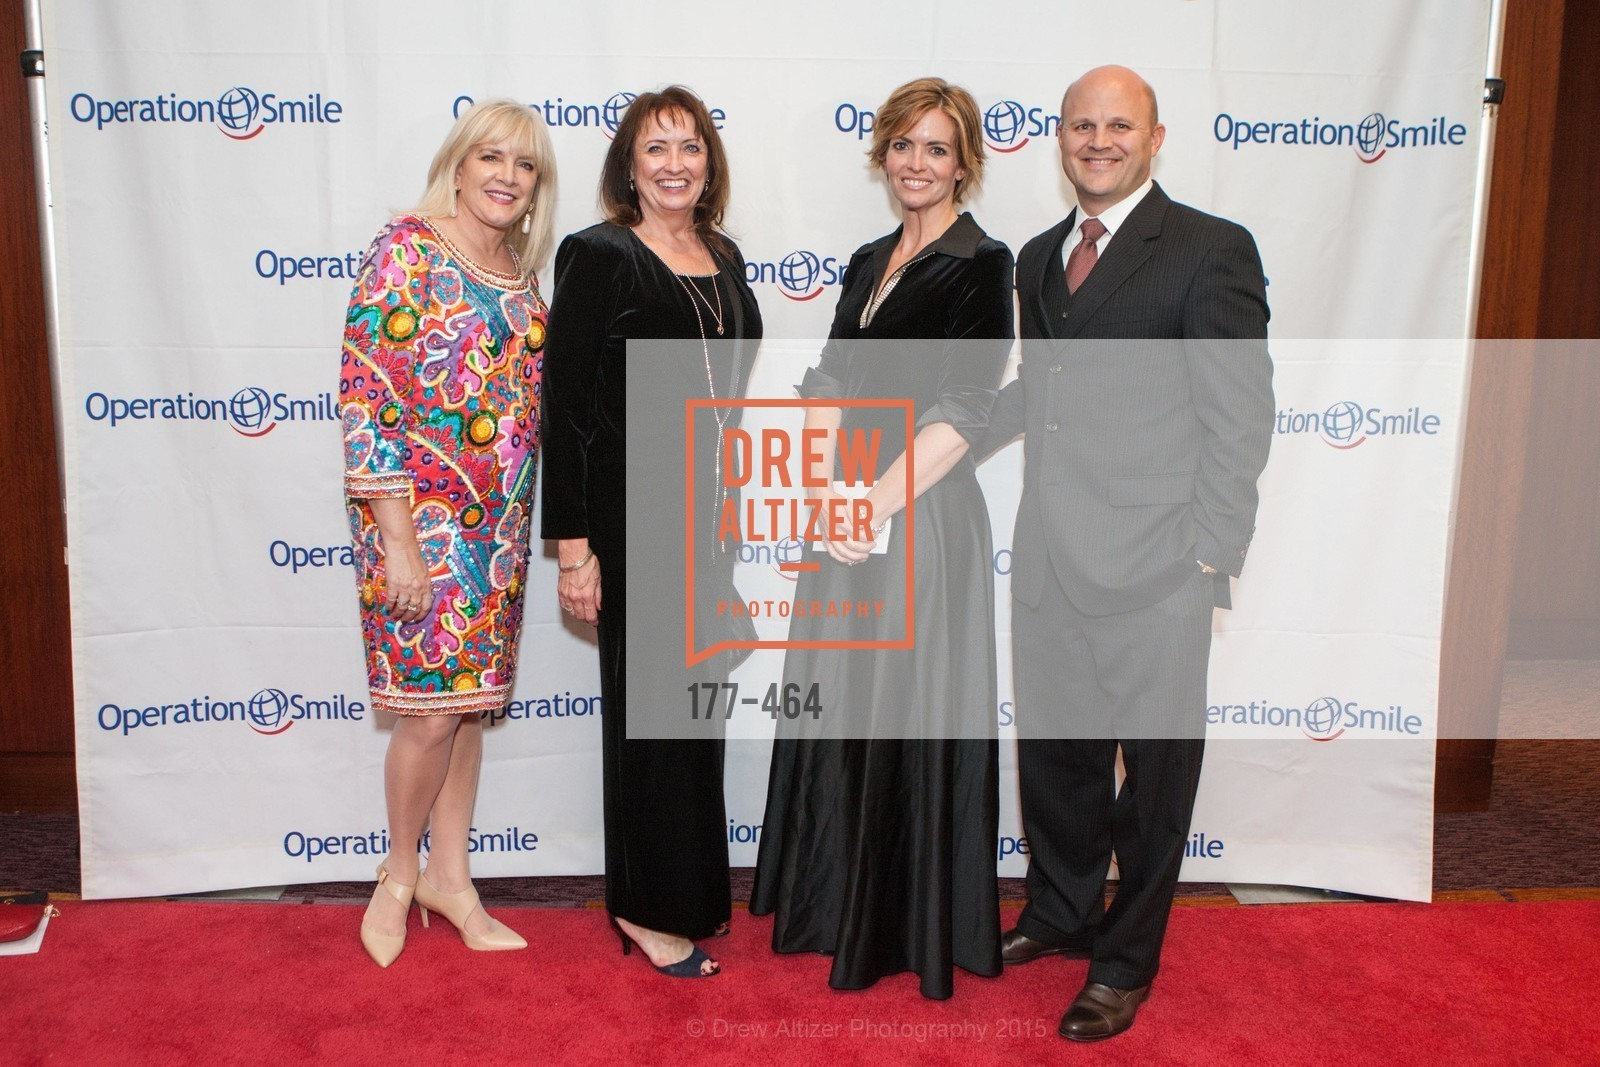 Pamela Frost, Shauna Woods Bingham, Jacey Davis, Fred Davis, Operation Smile Presents THE SAN FRANCISCO 2015 SMILE GALA, InterContinental Hotel, November 7th, 2015,Drew Altizer, Drew Altizer Photography, full-service agency, private events, San Francisco photographer, photographer california